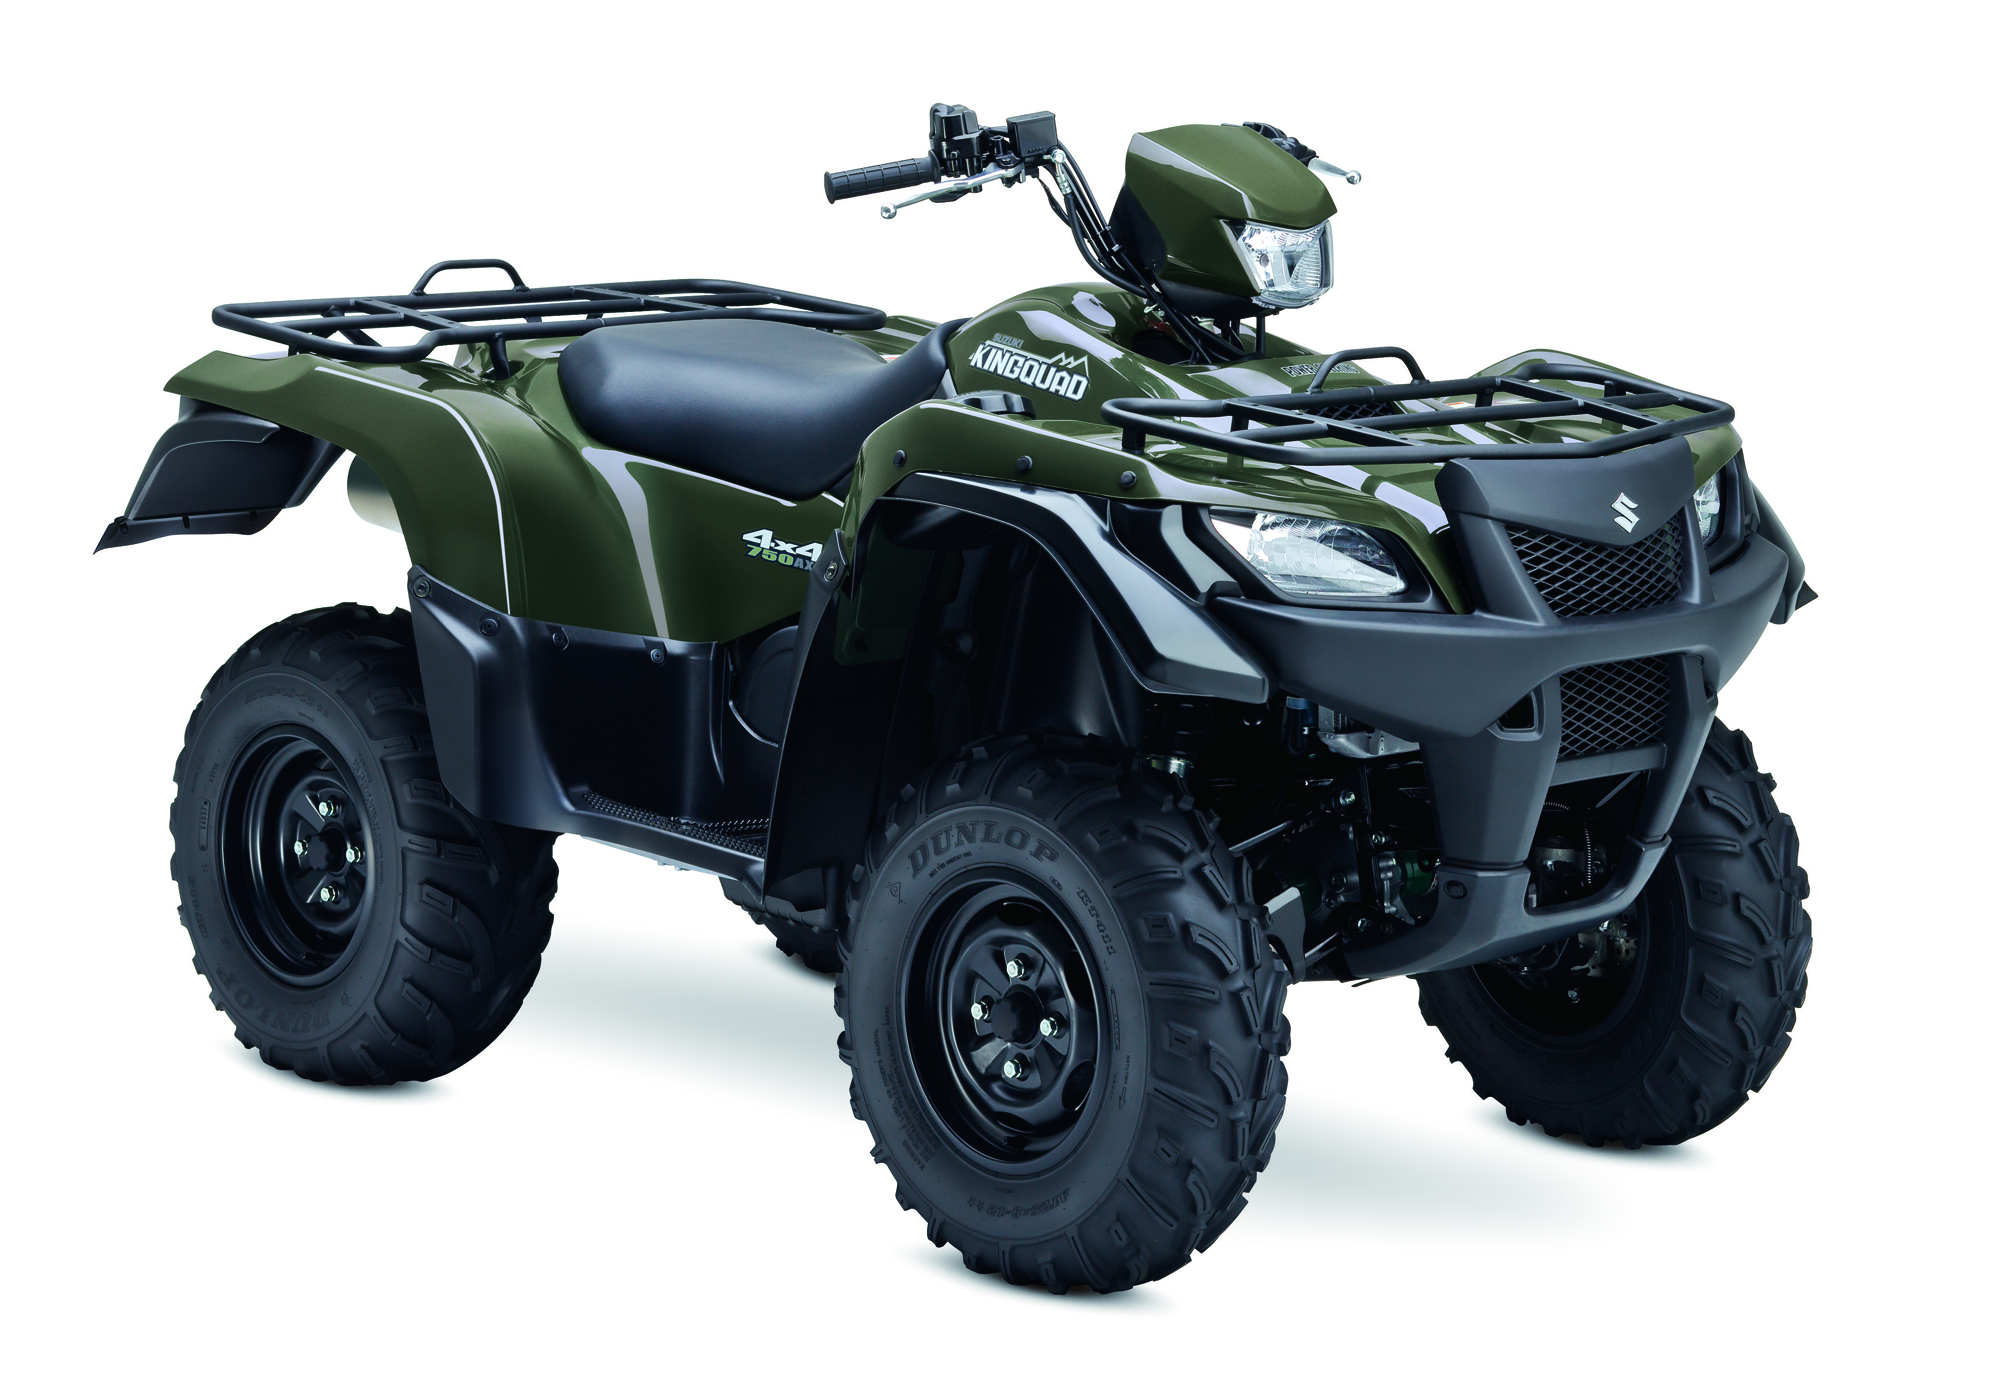 gebrauchte suzuki kingquad 750axi 4x4 motorr der kaufen. Black Bedroom Furniture Sets. Home Design Ideas